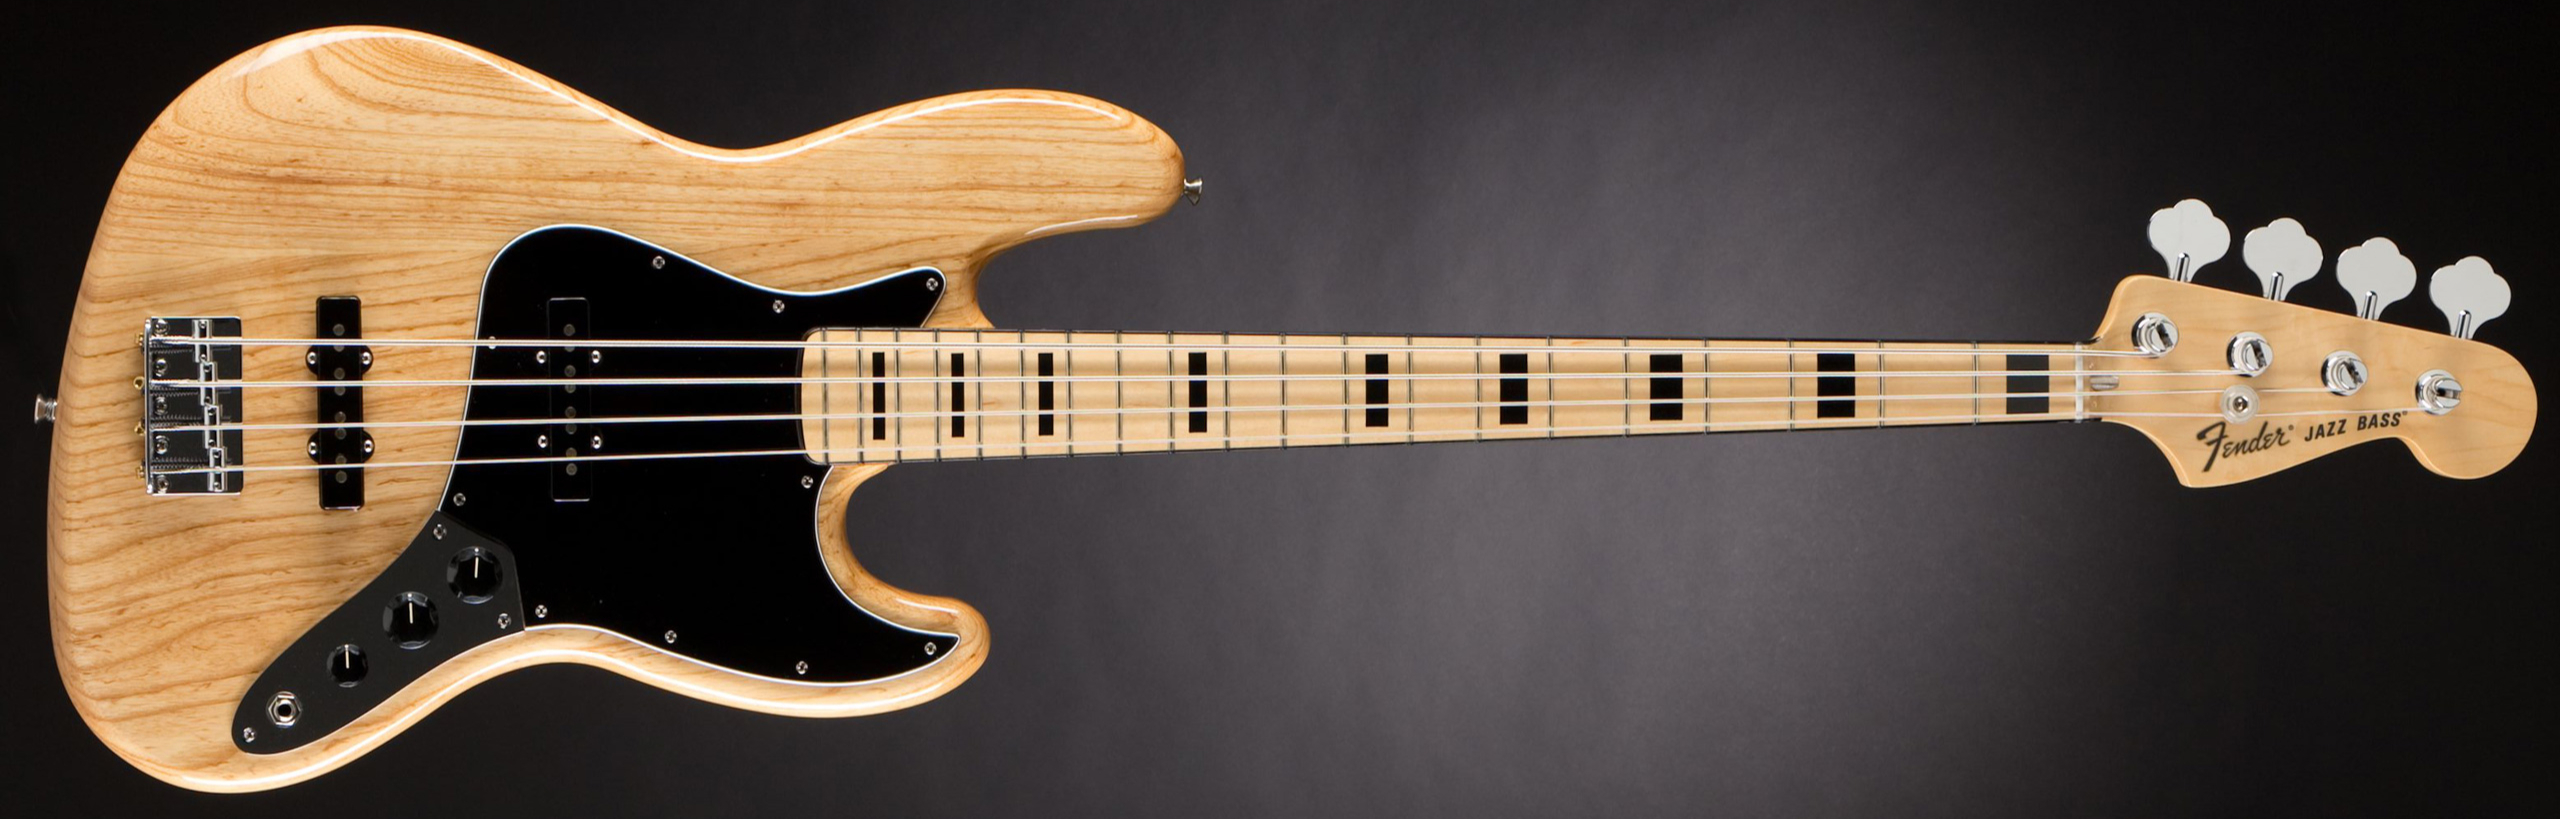 FENDER Limited Edition '70s Jazz Bass MN Natural